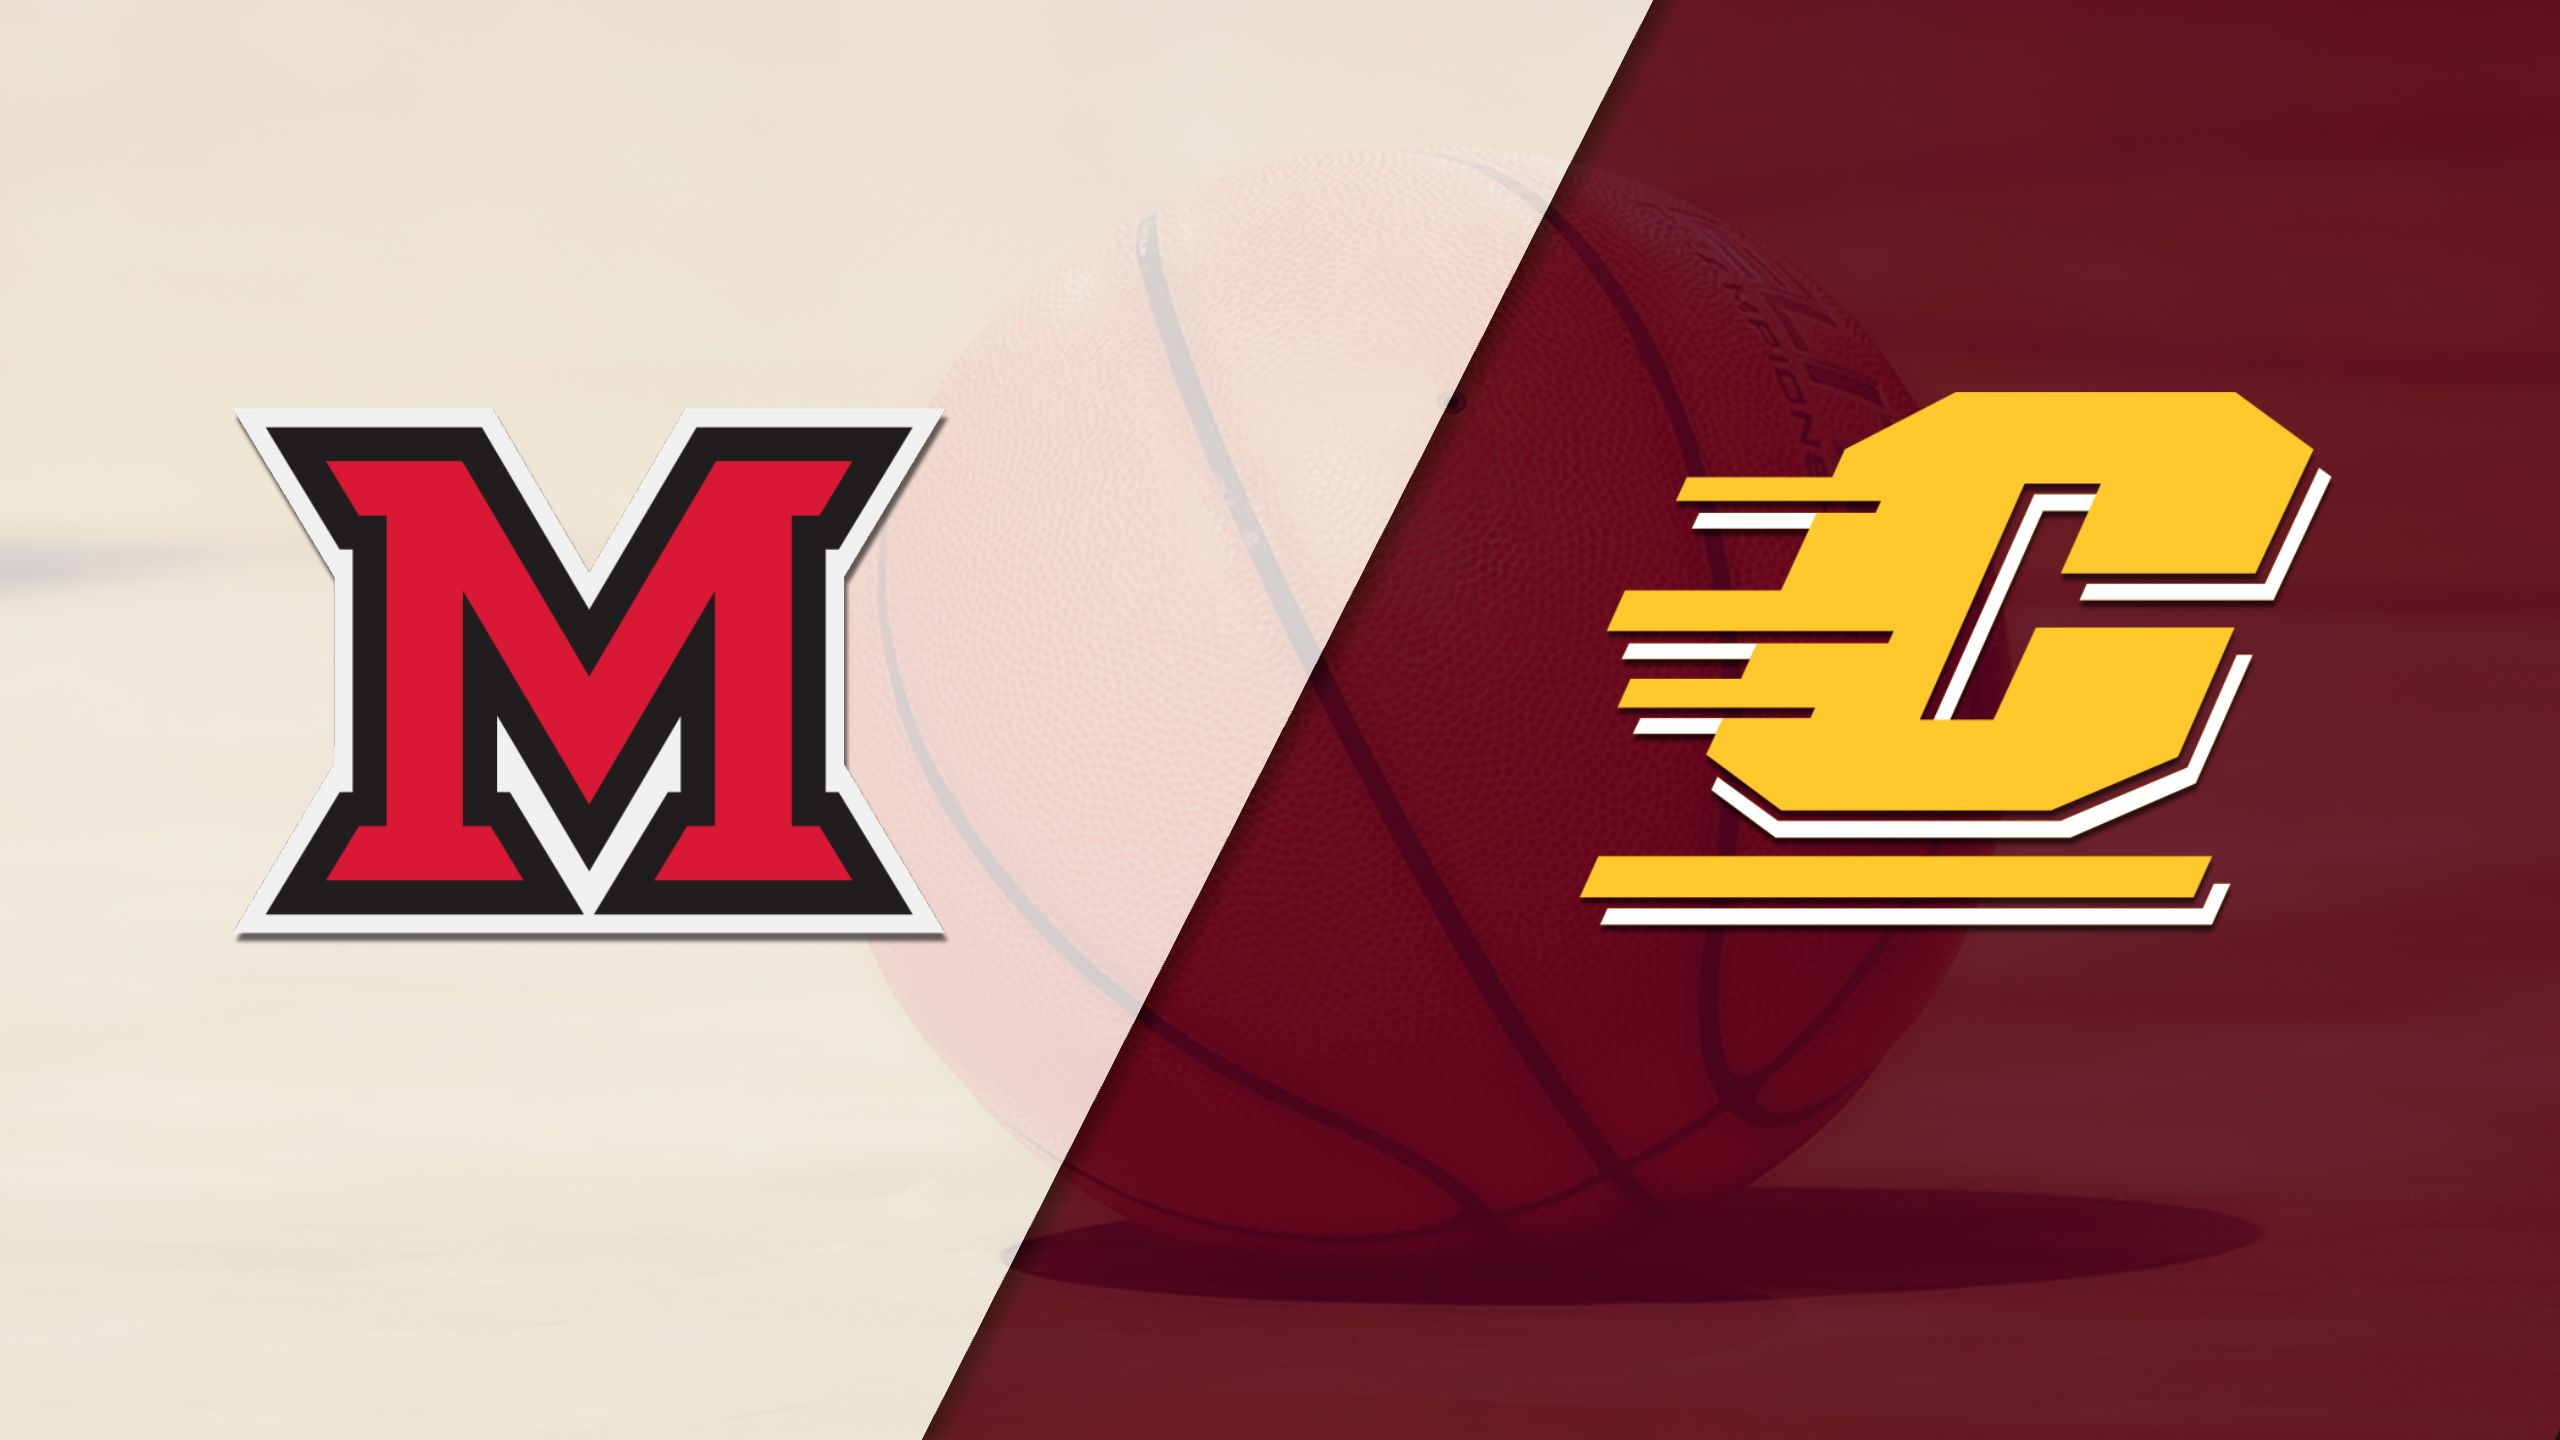 Miami (OH) vs. Central Michigan (M Basketball)